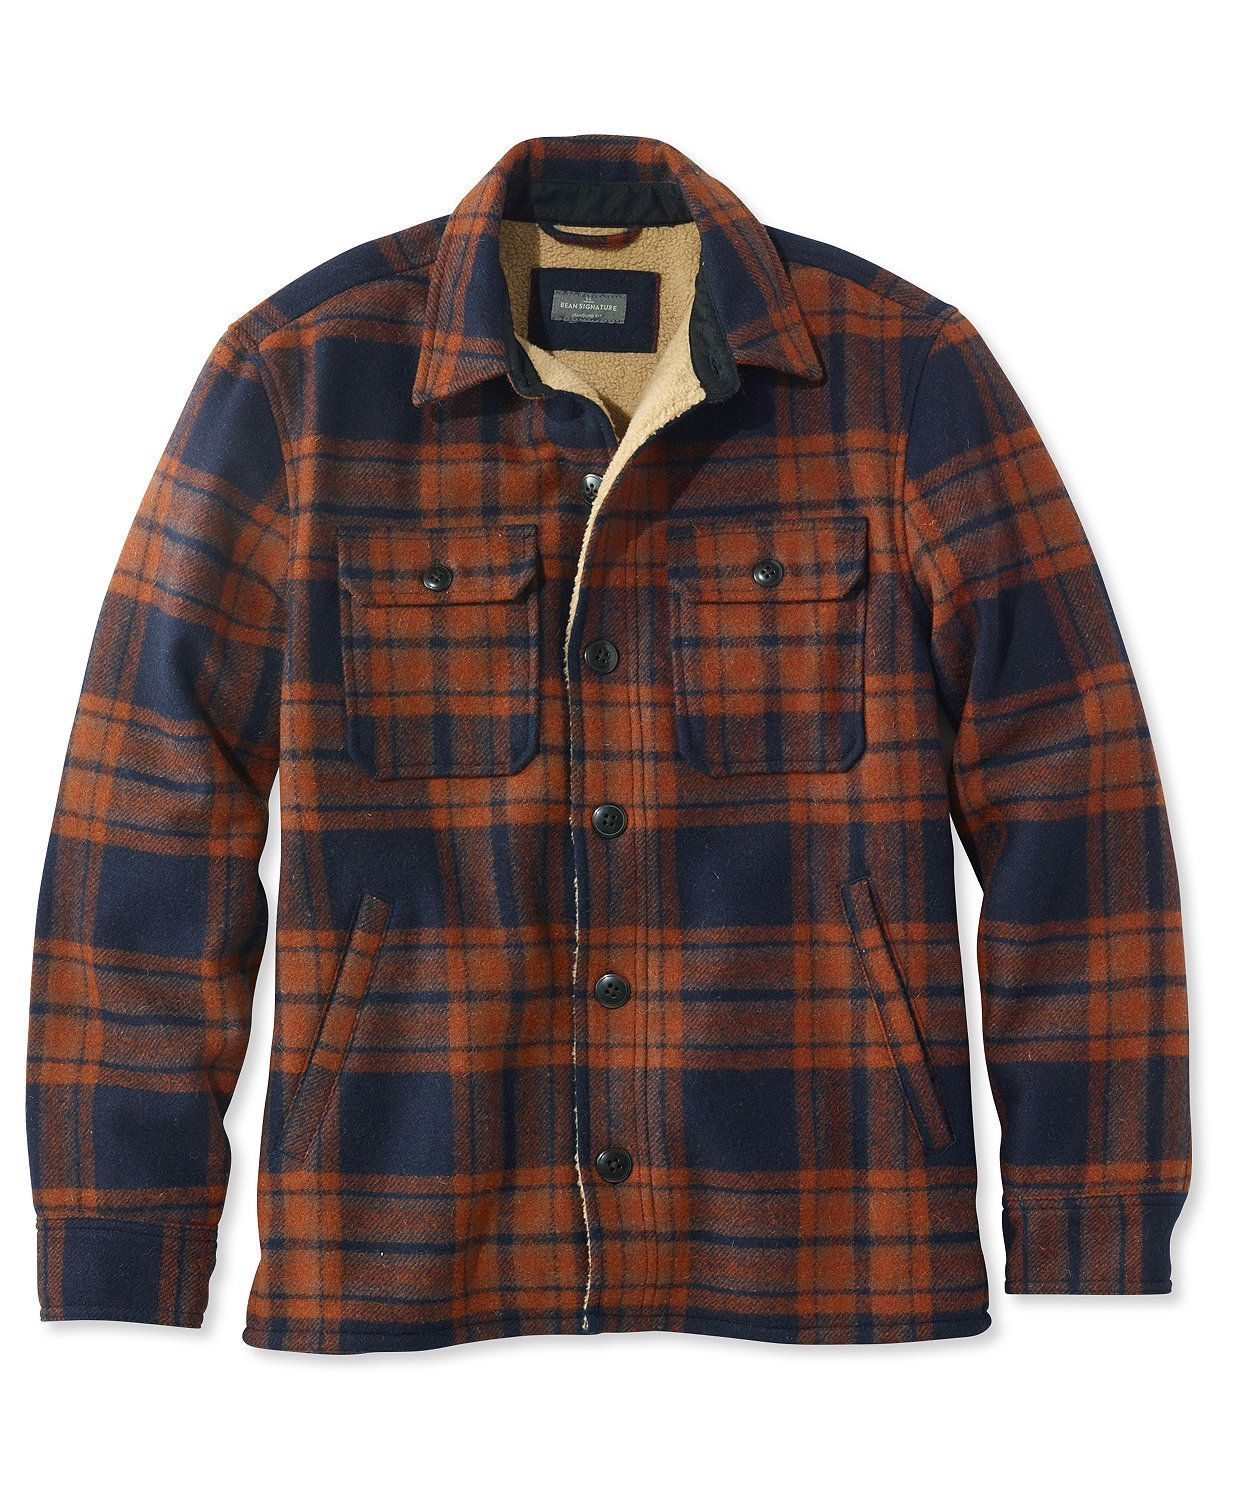 Flannel jacket with wool lining  Signature Lined WoolBlend Shirt Jacket  Fashion  Pinterest